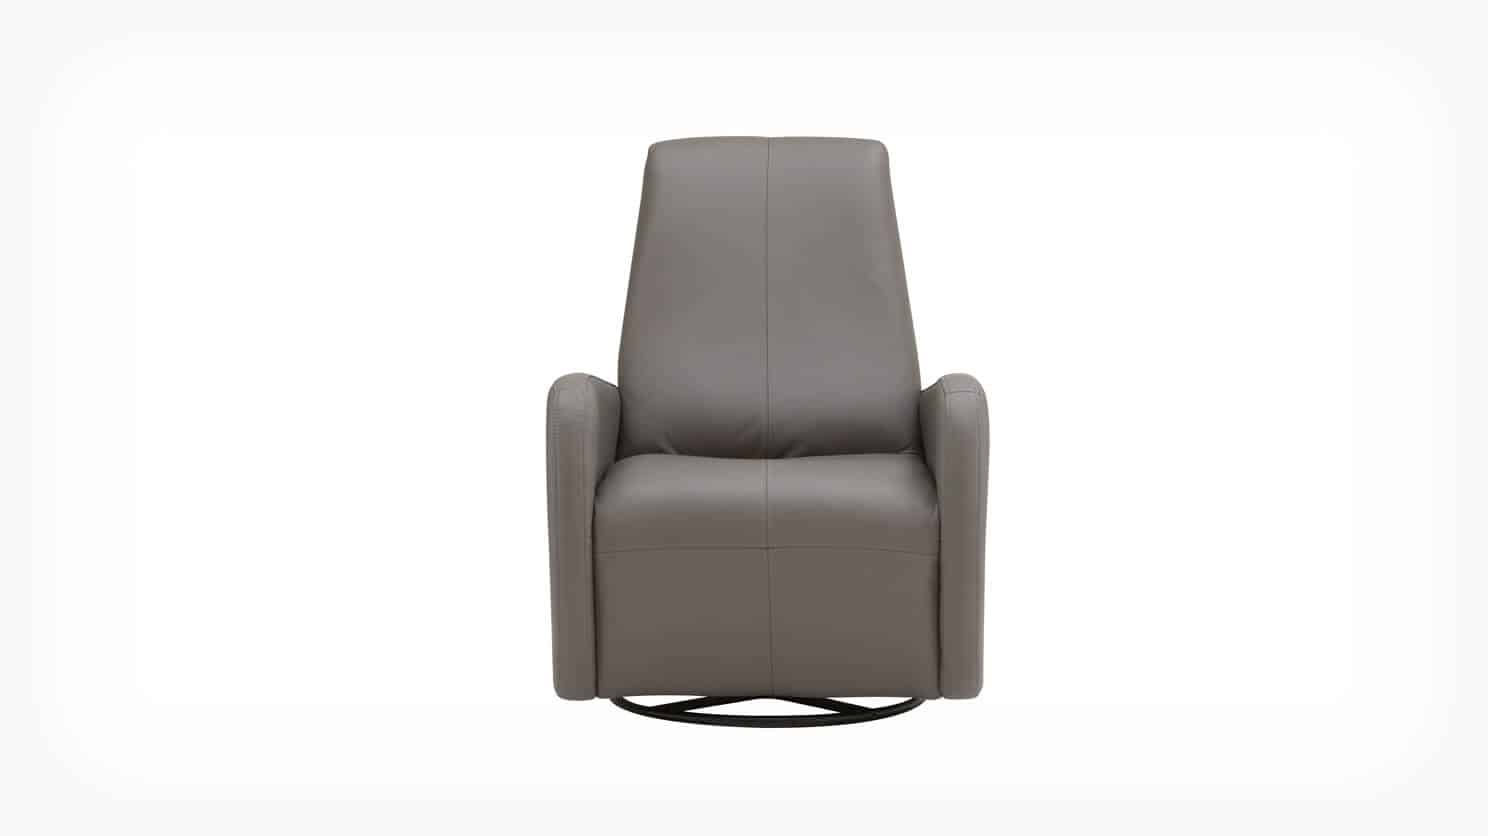 37073 71 1 chairs karbon chair disco leather front w swivel